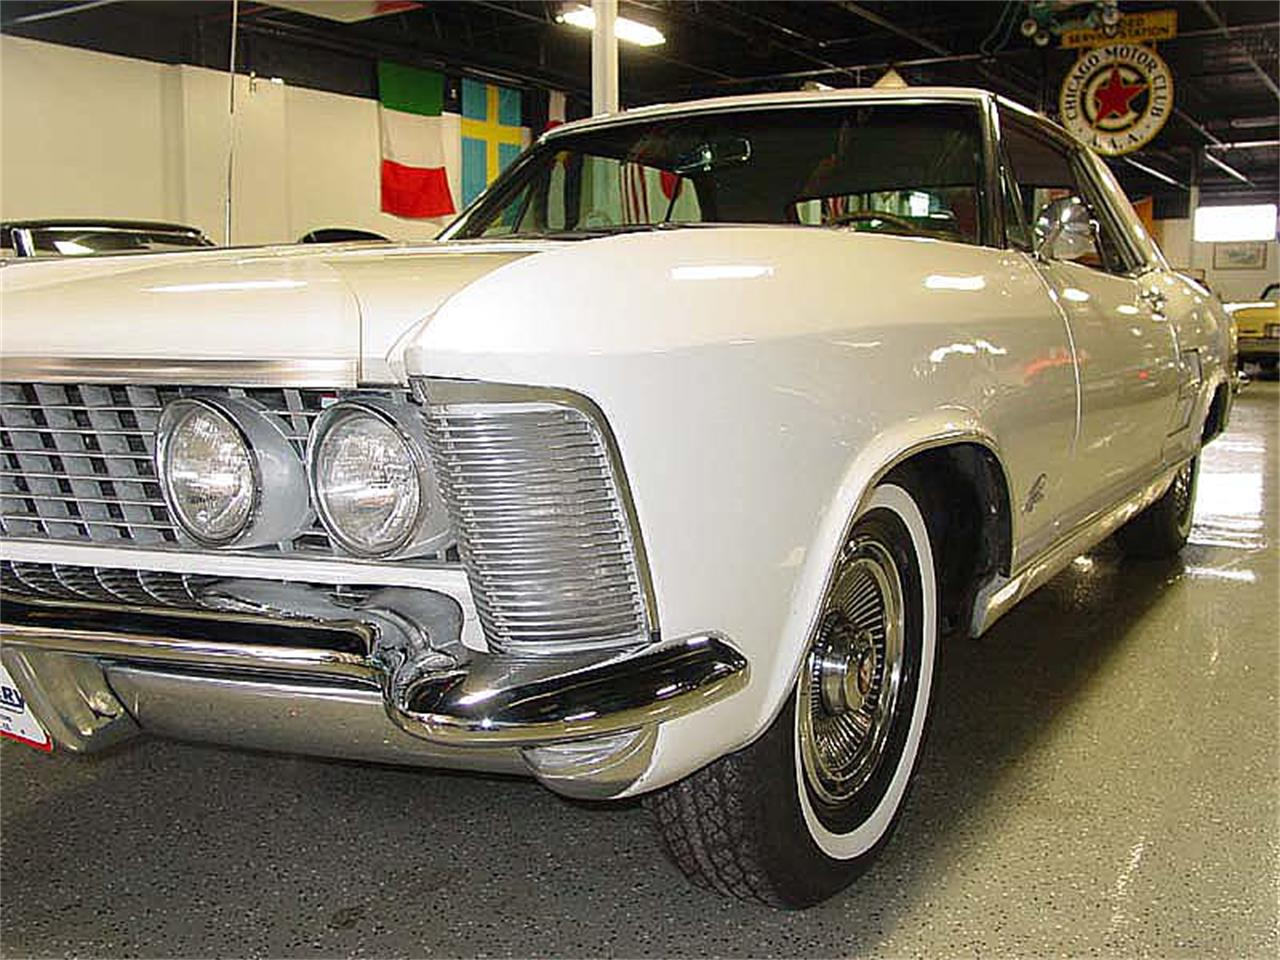 Large Picture of 1963 Buick Riviera located in colorado springs Colorado - $25,500.00 - LOVX